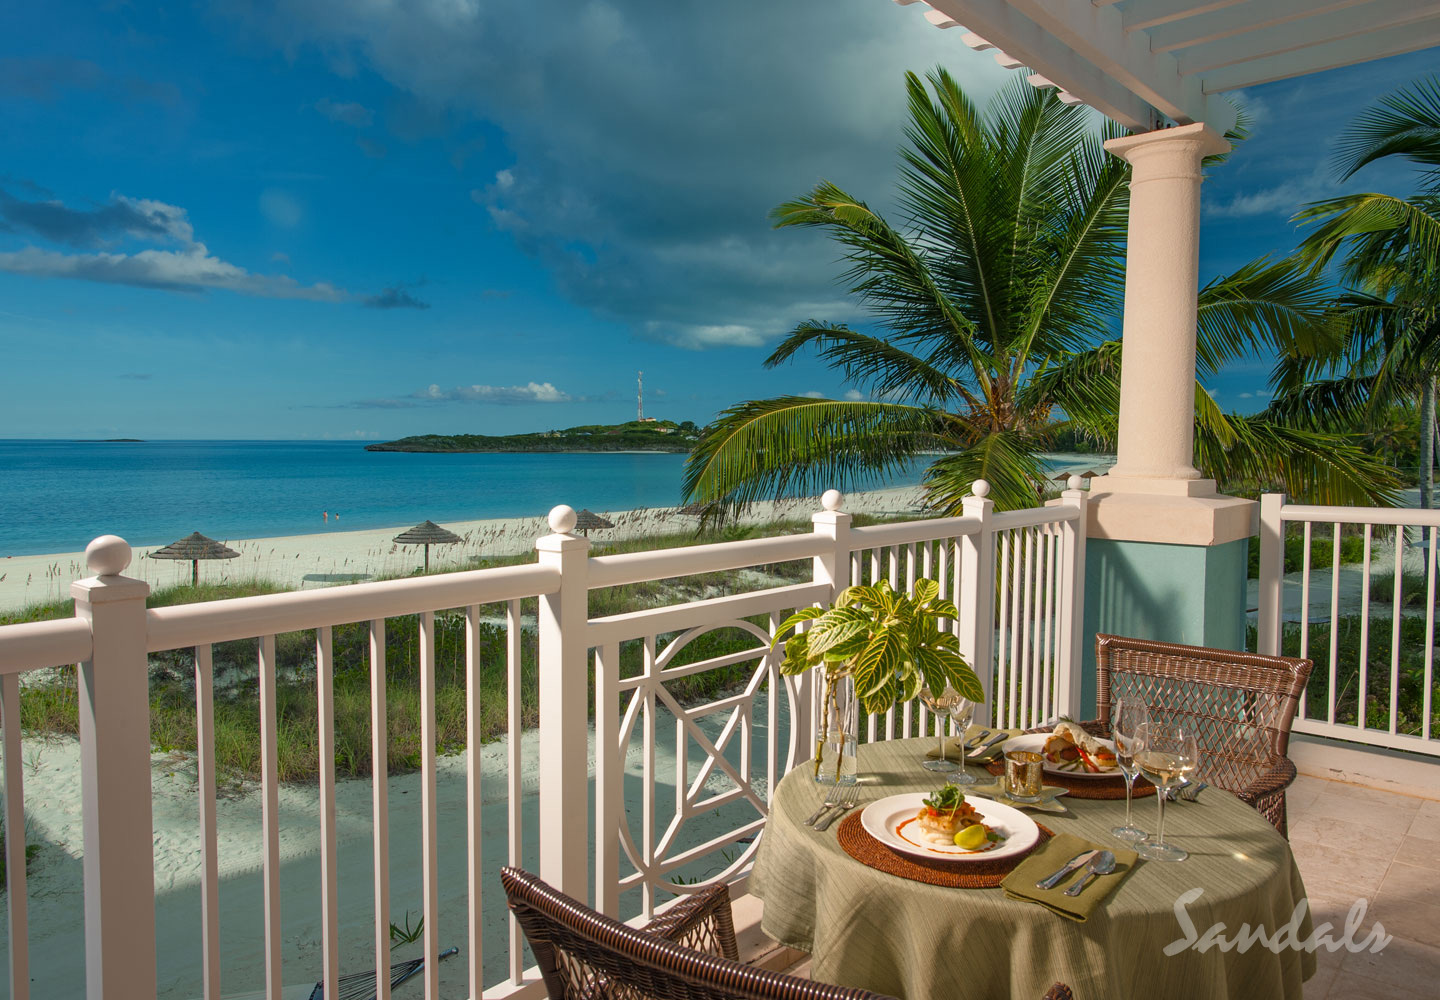 Travel Agency All-Inclusive Resort Sandals Emerald Bay 081